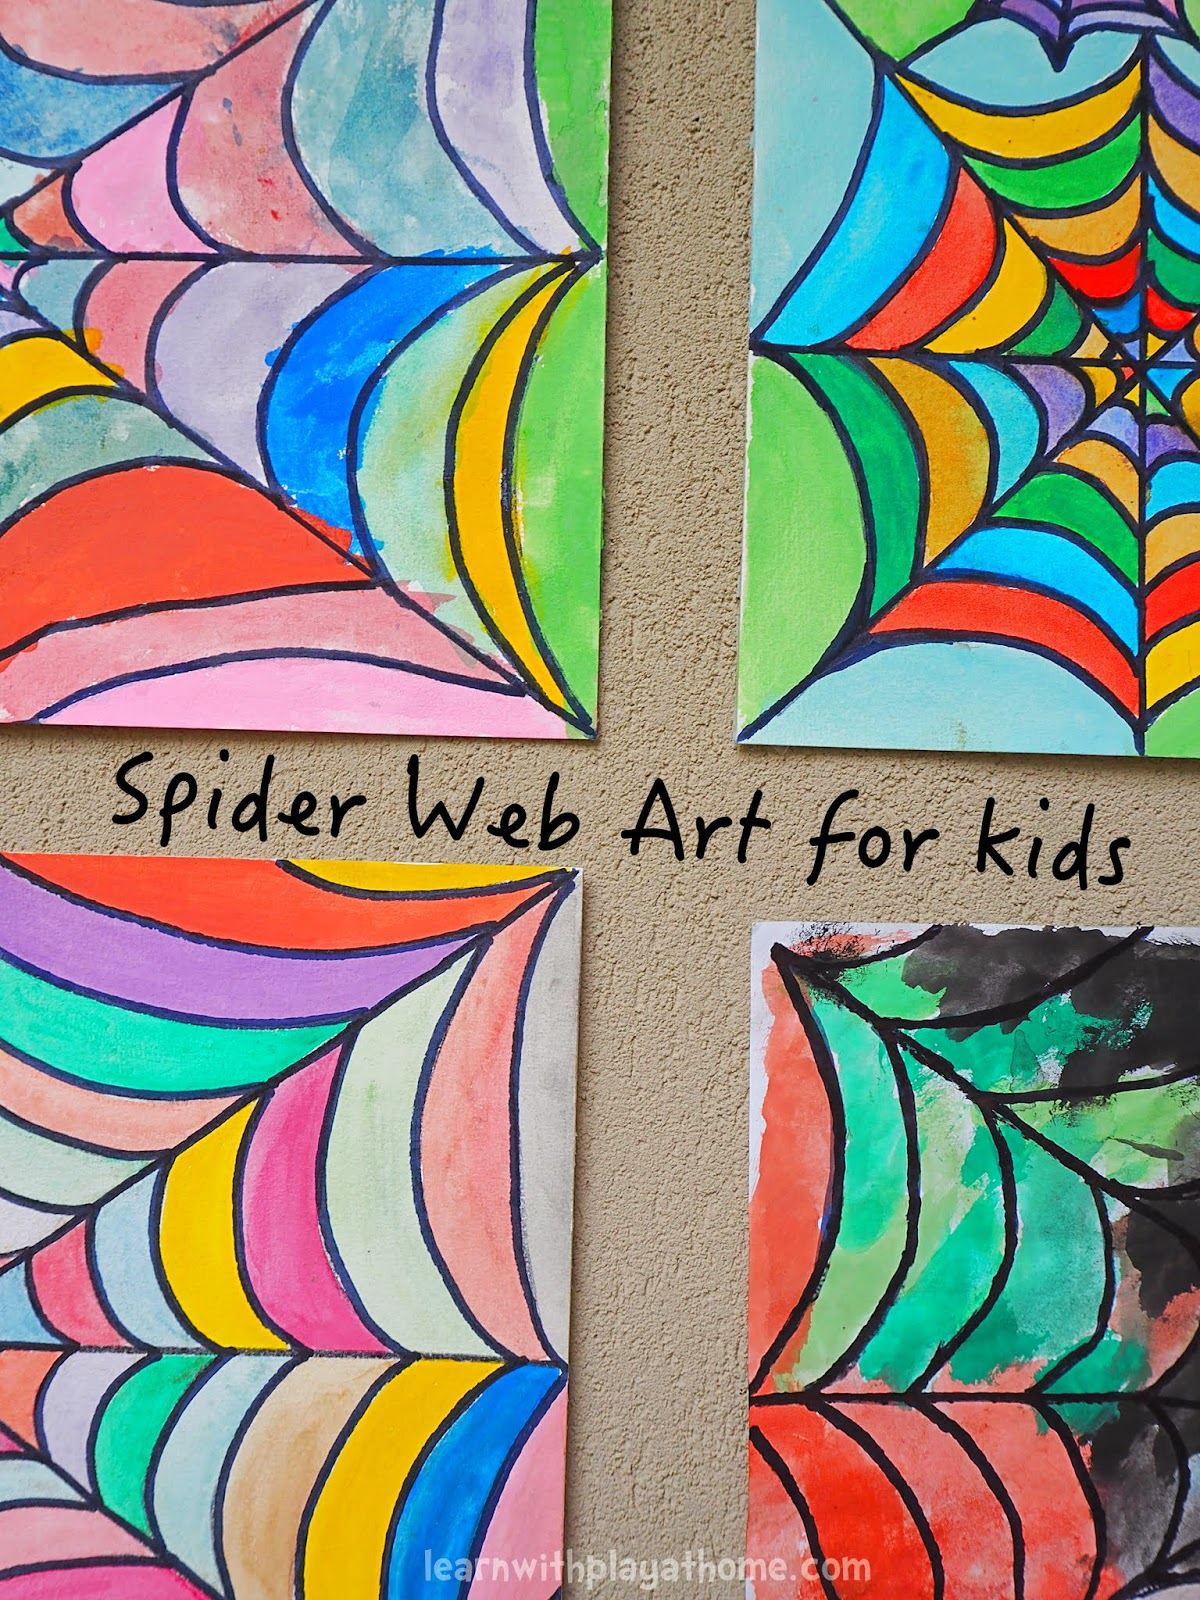 Learn with play at home spider web art for kids for Painting craft projects